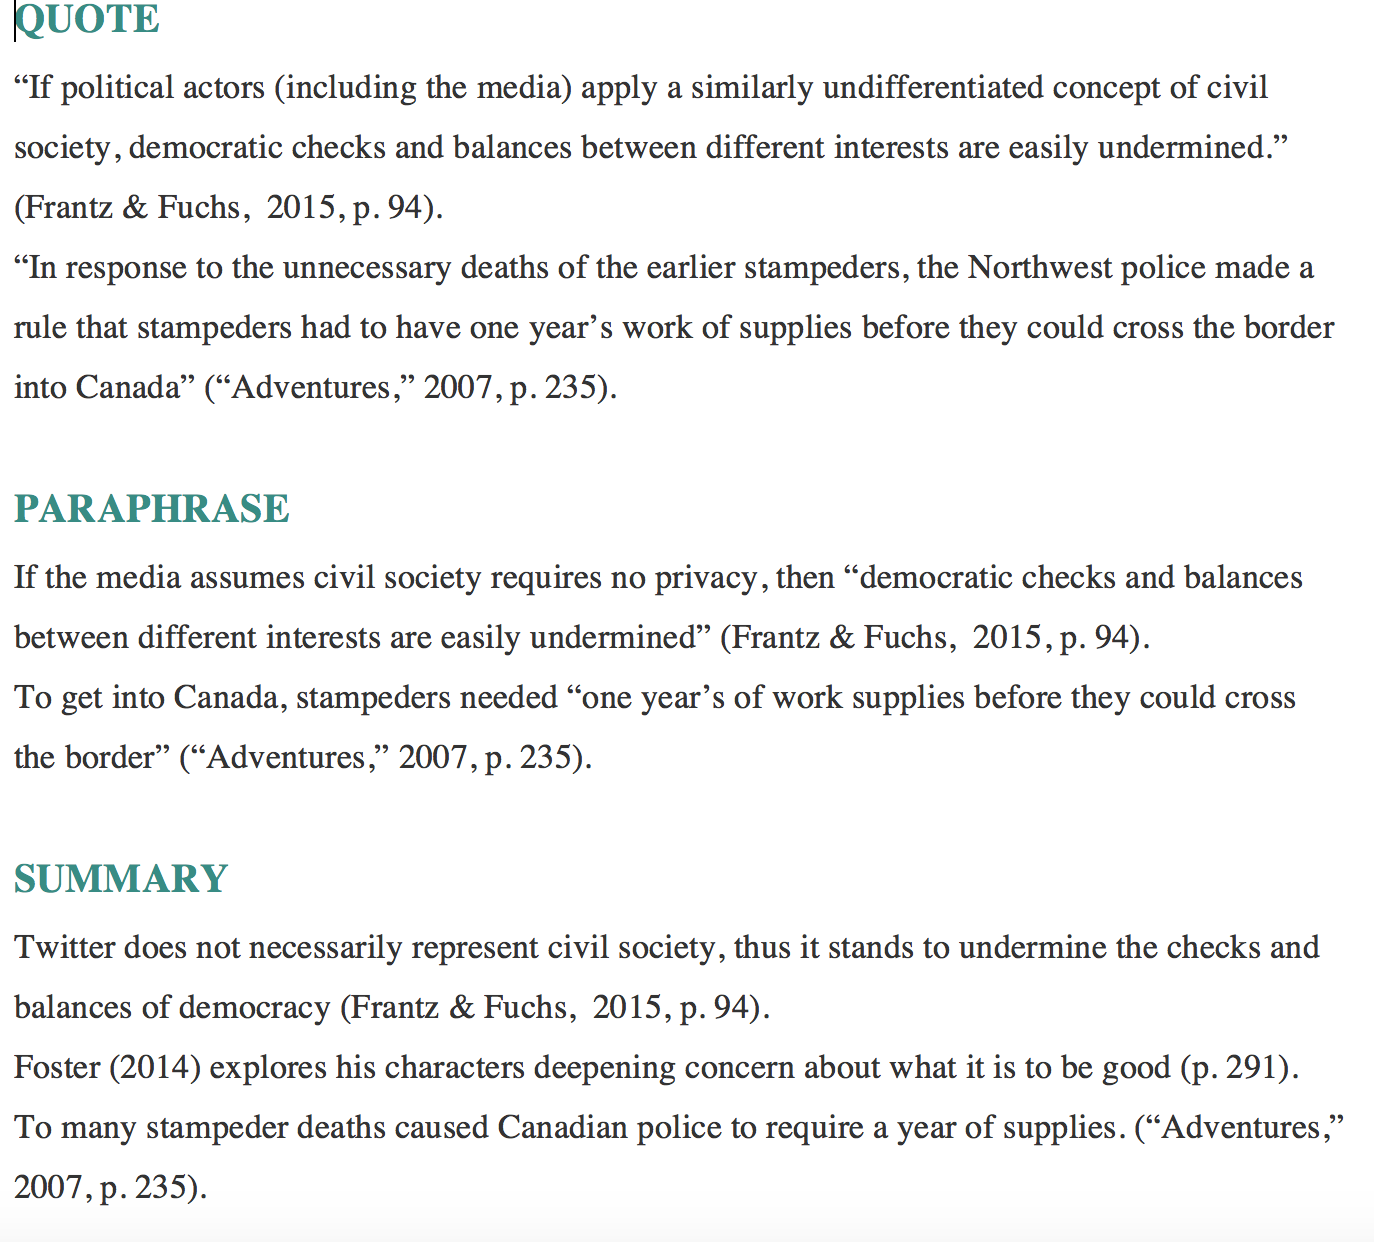 "QUOTE ""If political actors (including the media) apply a similarly undifferentiated concept of civil society, democratic checks and balances between different interests are easily undermined."" (Frantz & Fuchs,  2015, p. 94).   ""In response to the unnecessary deaths of the earlier stampeders, the Northwest police made a rule that stampeders had to have one year's work of supplies before they could cross the border into Canada"" (""Adventures,"" 2007, p. 235).  PARAPHRASE If the media assumes civil society requires no privacy, then ""democratic checks and balances between different interests are easily undermined"" (Frantz & Fuchs,  2015, p. 94).   To get into Canada, stampeders needed ""one year's of work supplies before they could cross  the border"" (""Adventures,"" 2007, p. 235).  SUMMARY Twitter does not necessarily represent civil society, thus it stands to undermine the checks and balances of democracy (Frantz & Fuchs,  2015, p. 94).   Foster (2014) explores his characters deepening concern about what it is to be good (p. 291). To many stampeder deaths caused Canadian police to require a year of supplies. (""Adventures,"" 2007, p. 235)."